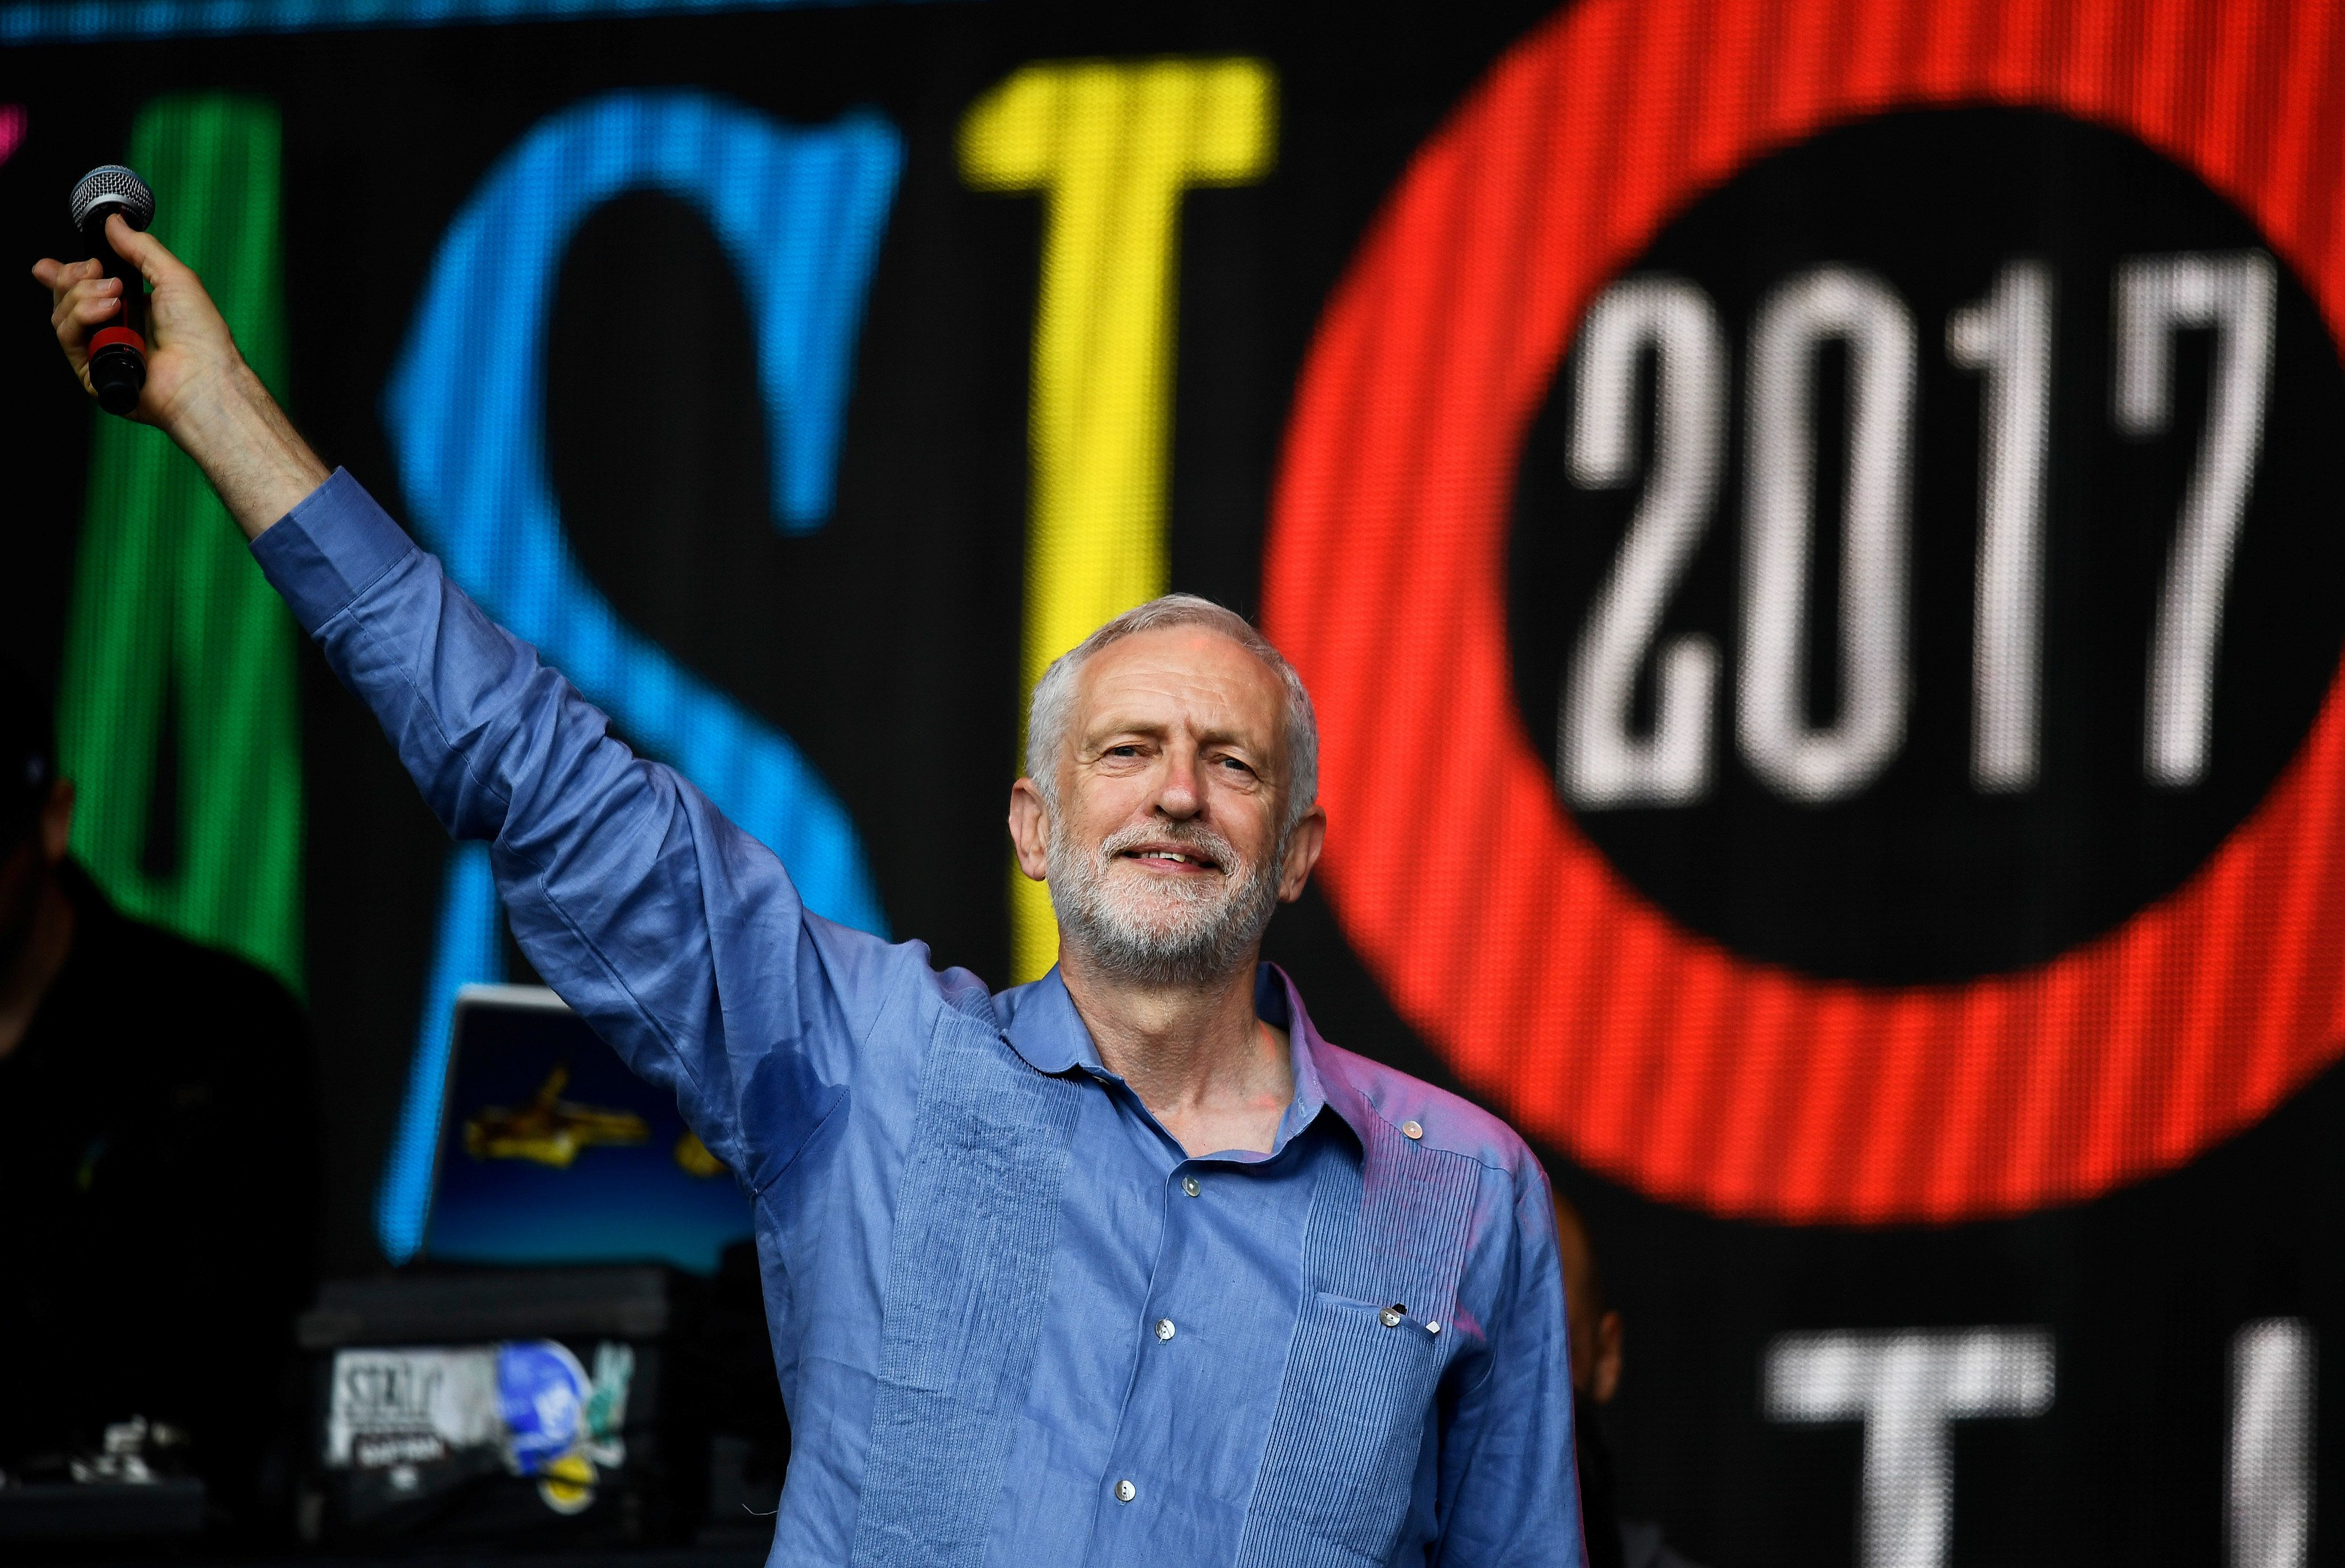 Corbyn Electrifies Glastonbury Crowd With Trump Taunt - Later Pulls